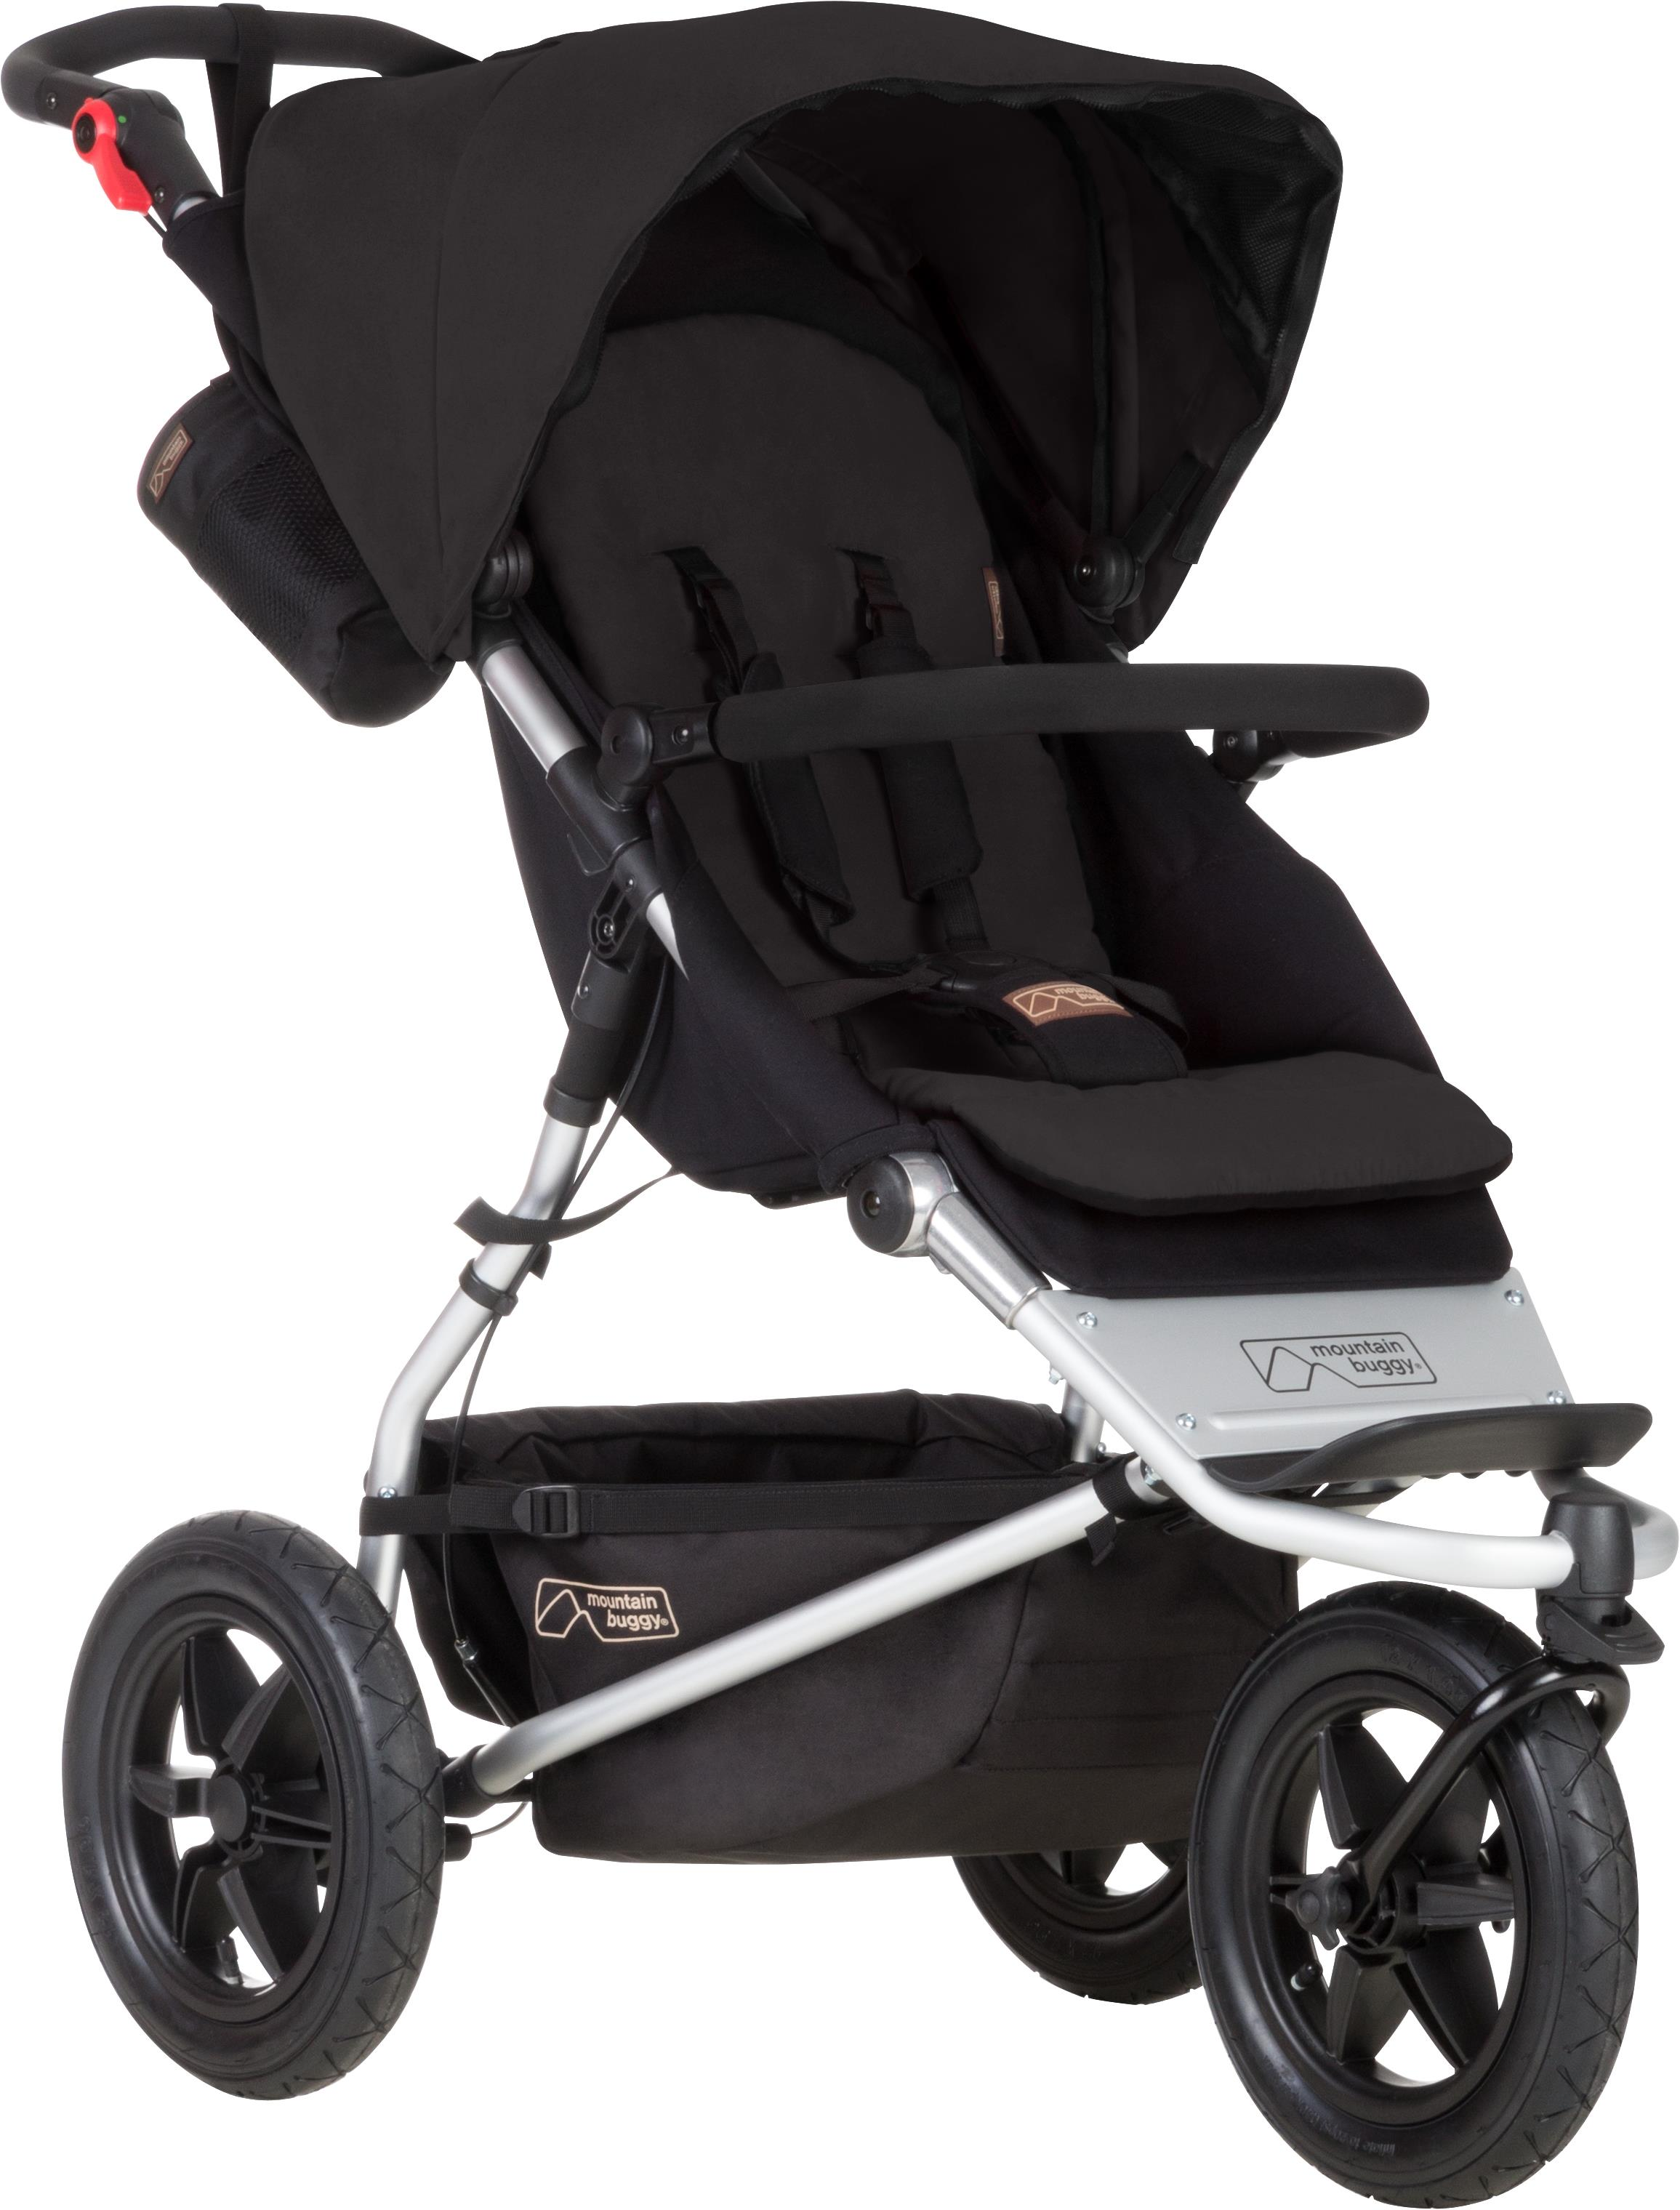 Doppel Kinderwagen Urban Jungle Urban Jungle 3 Black